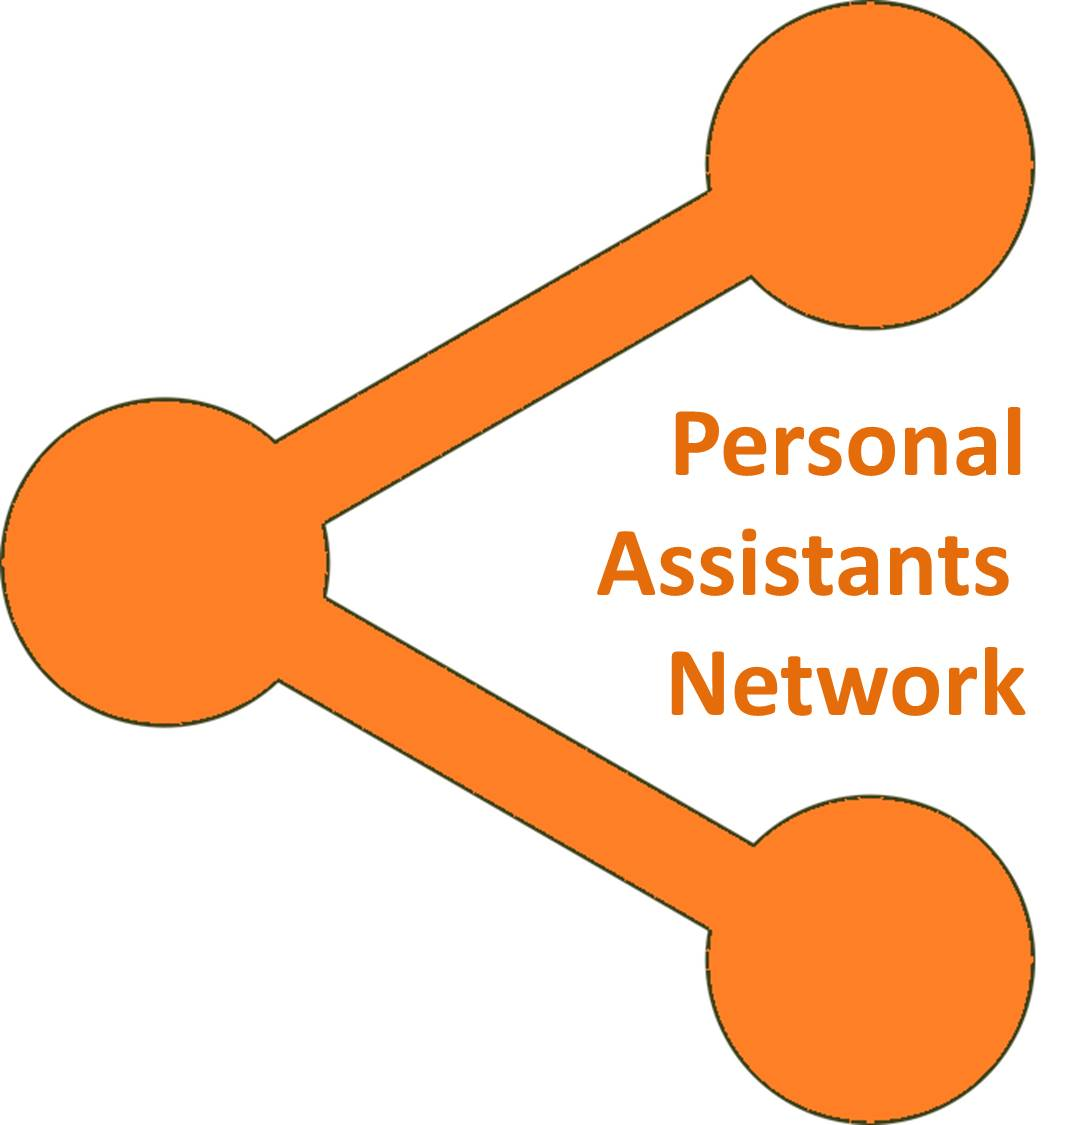 Personal Assistants Network